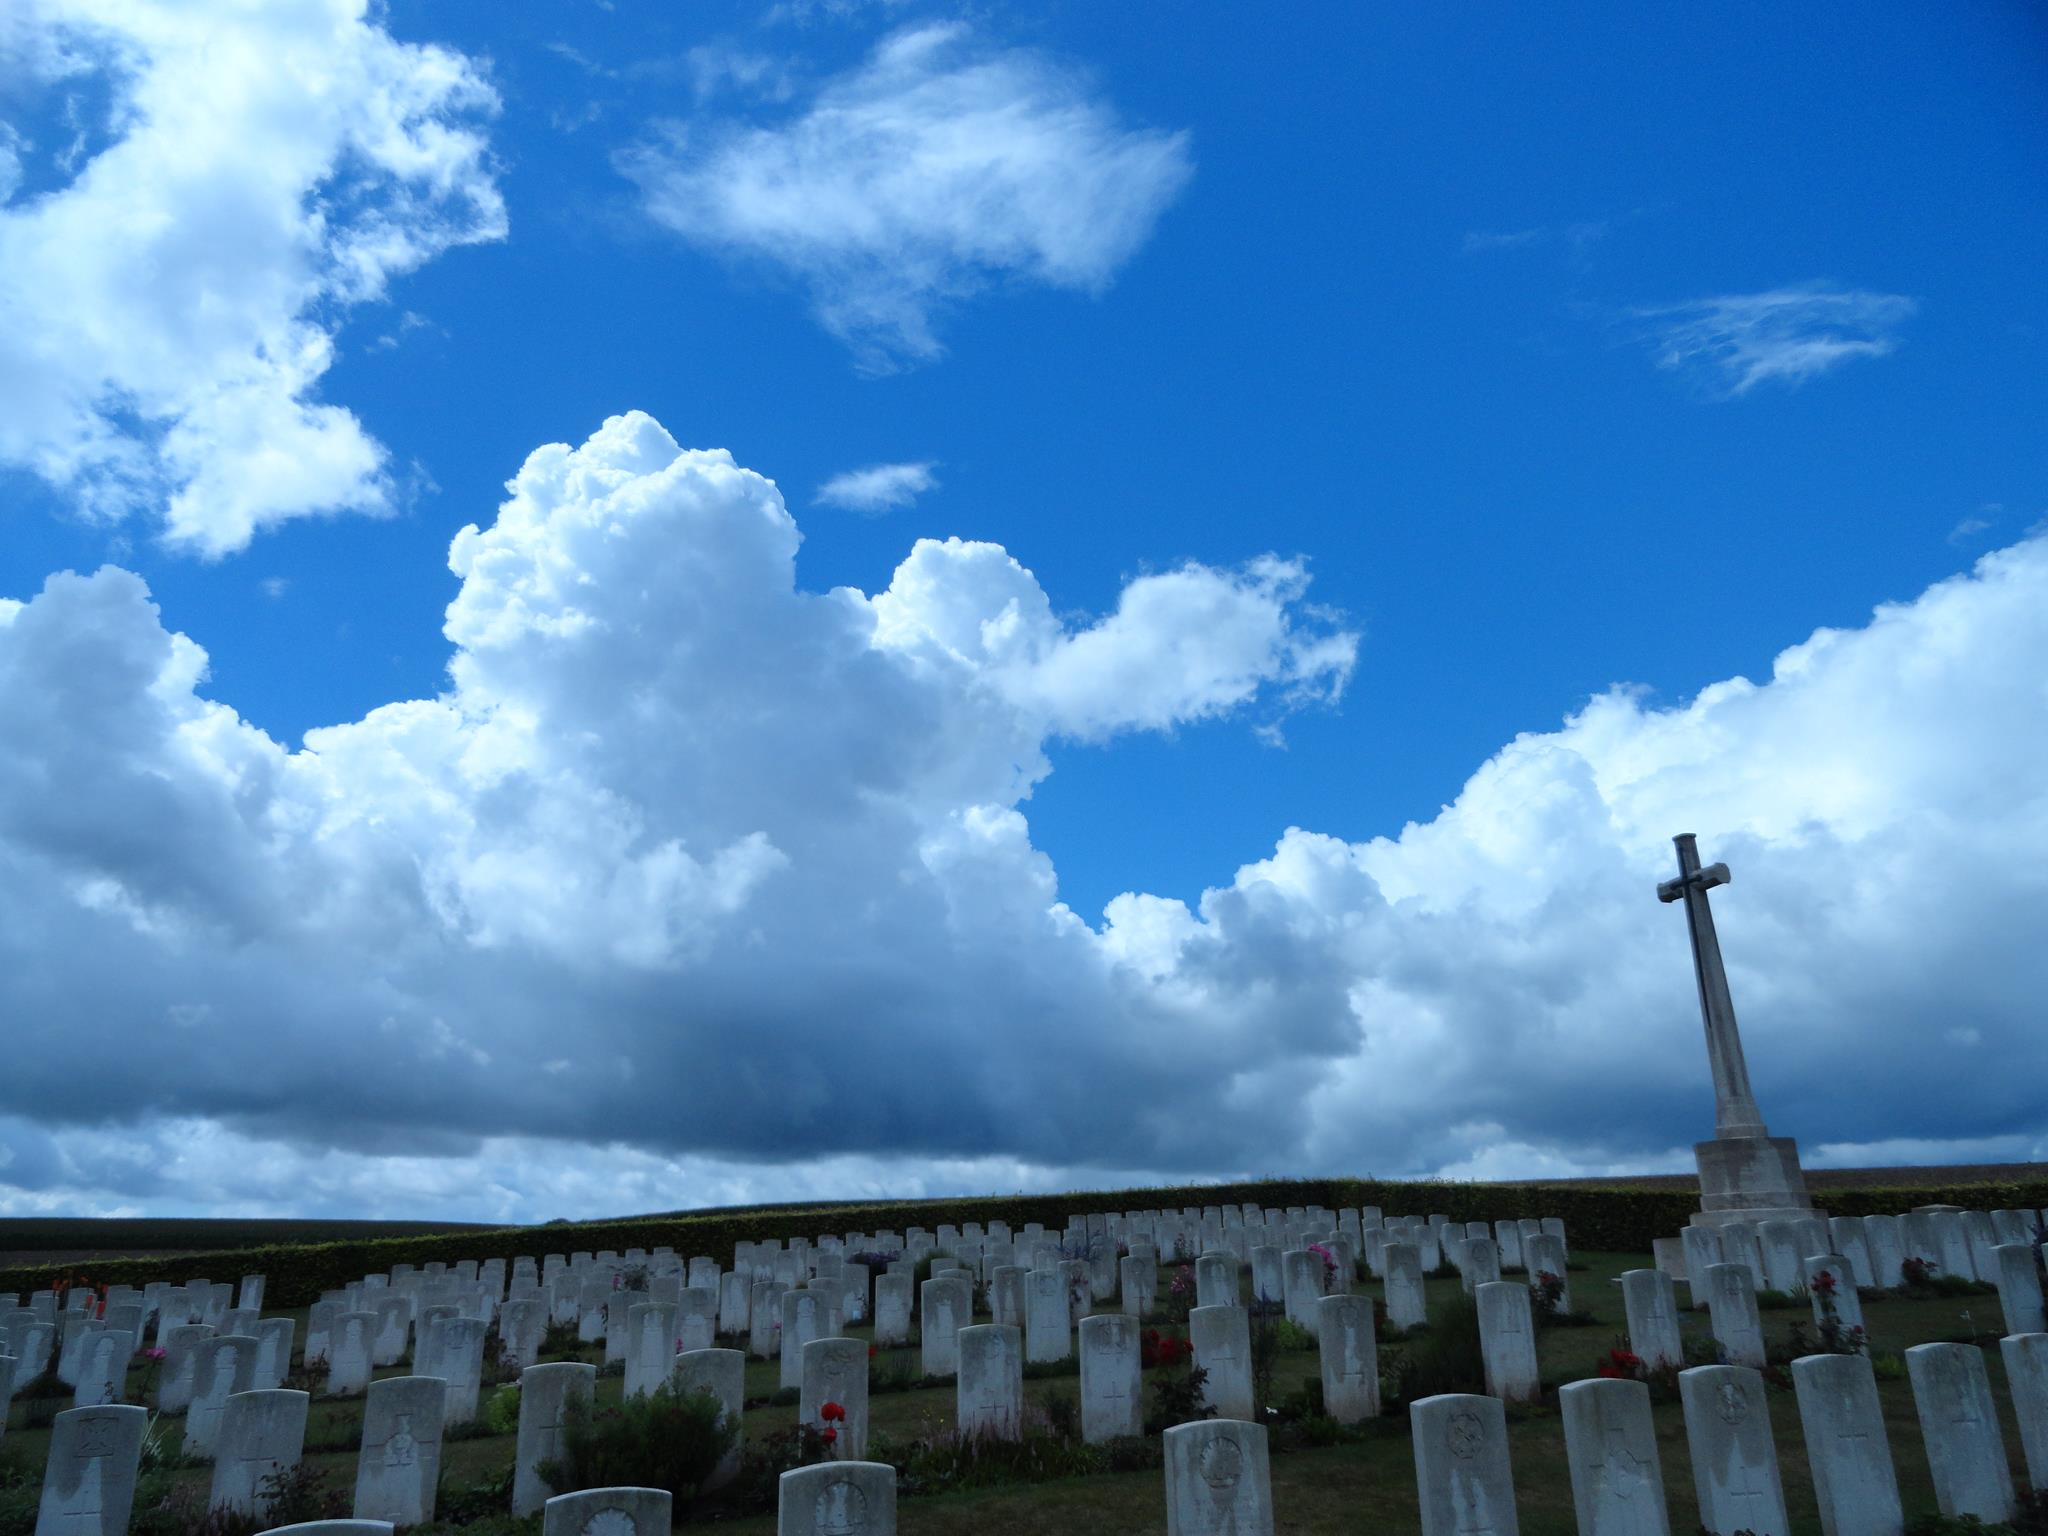 Commonwealth war graves, The Somme